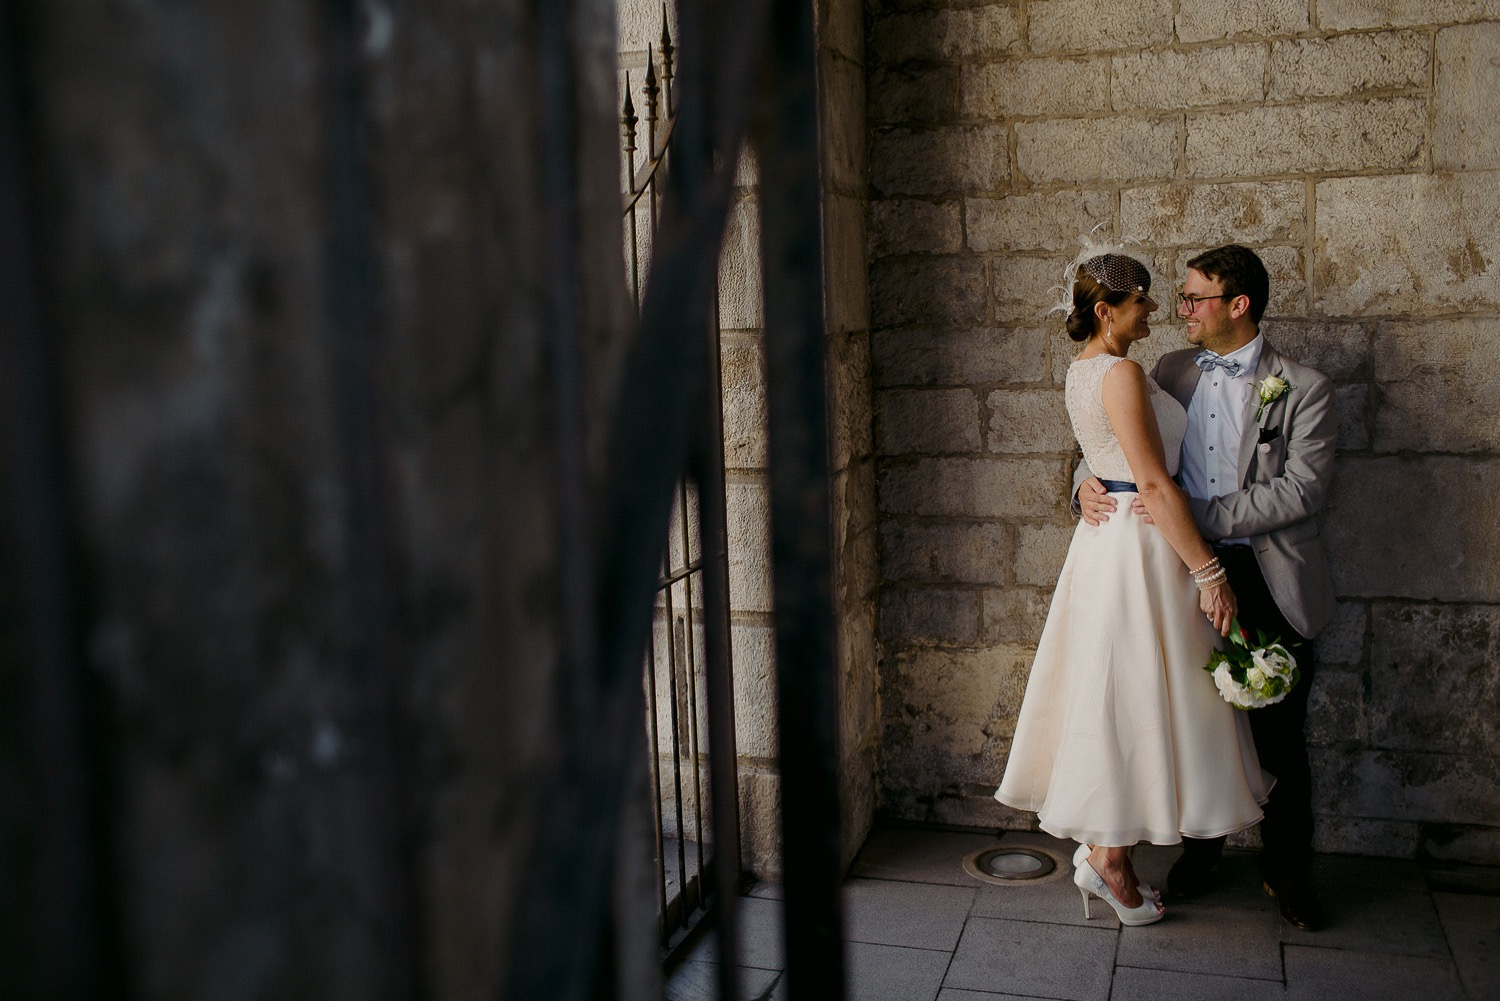 Gibraltar Elopement Photos in the Old Town